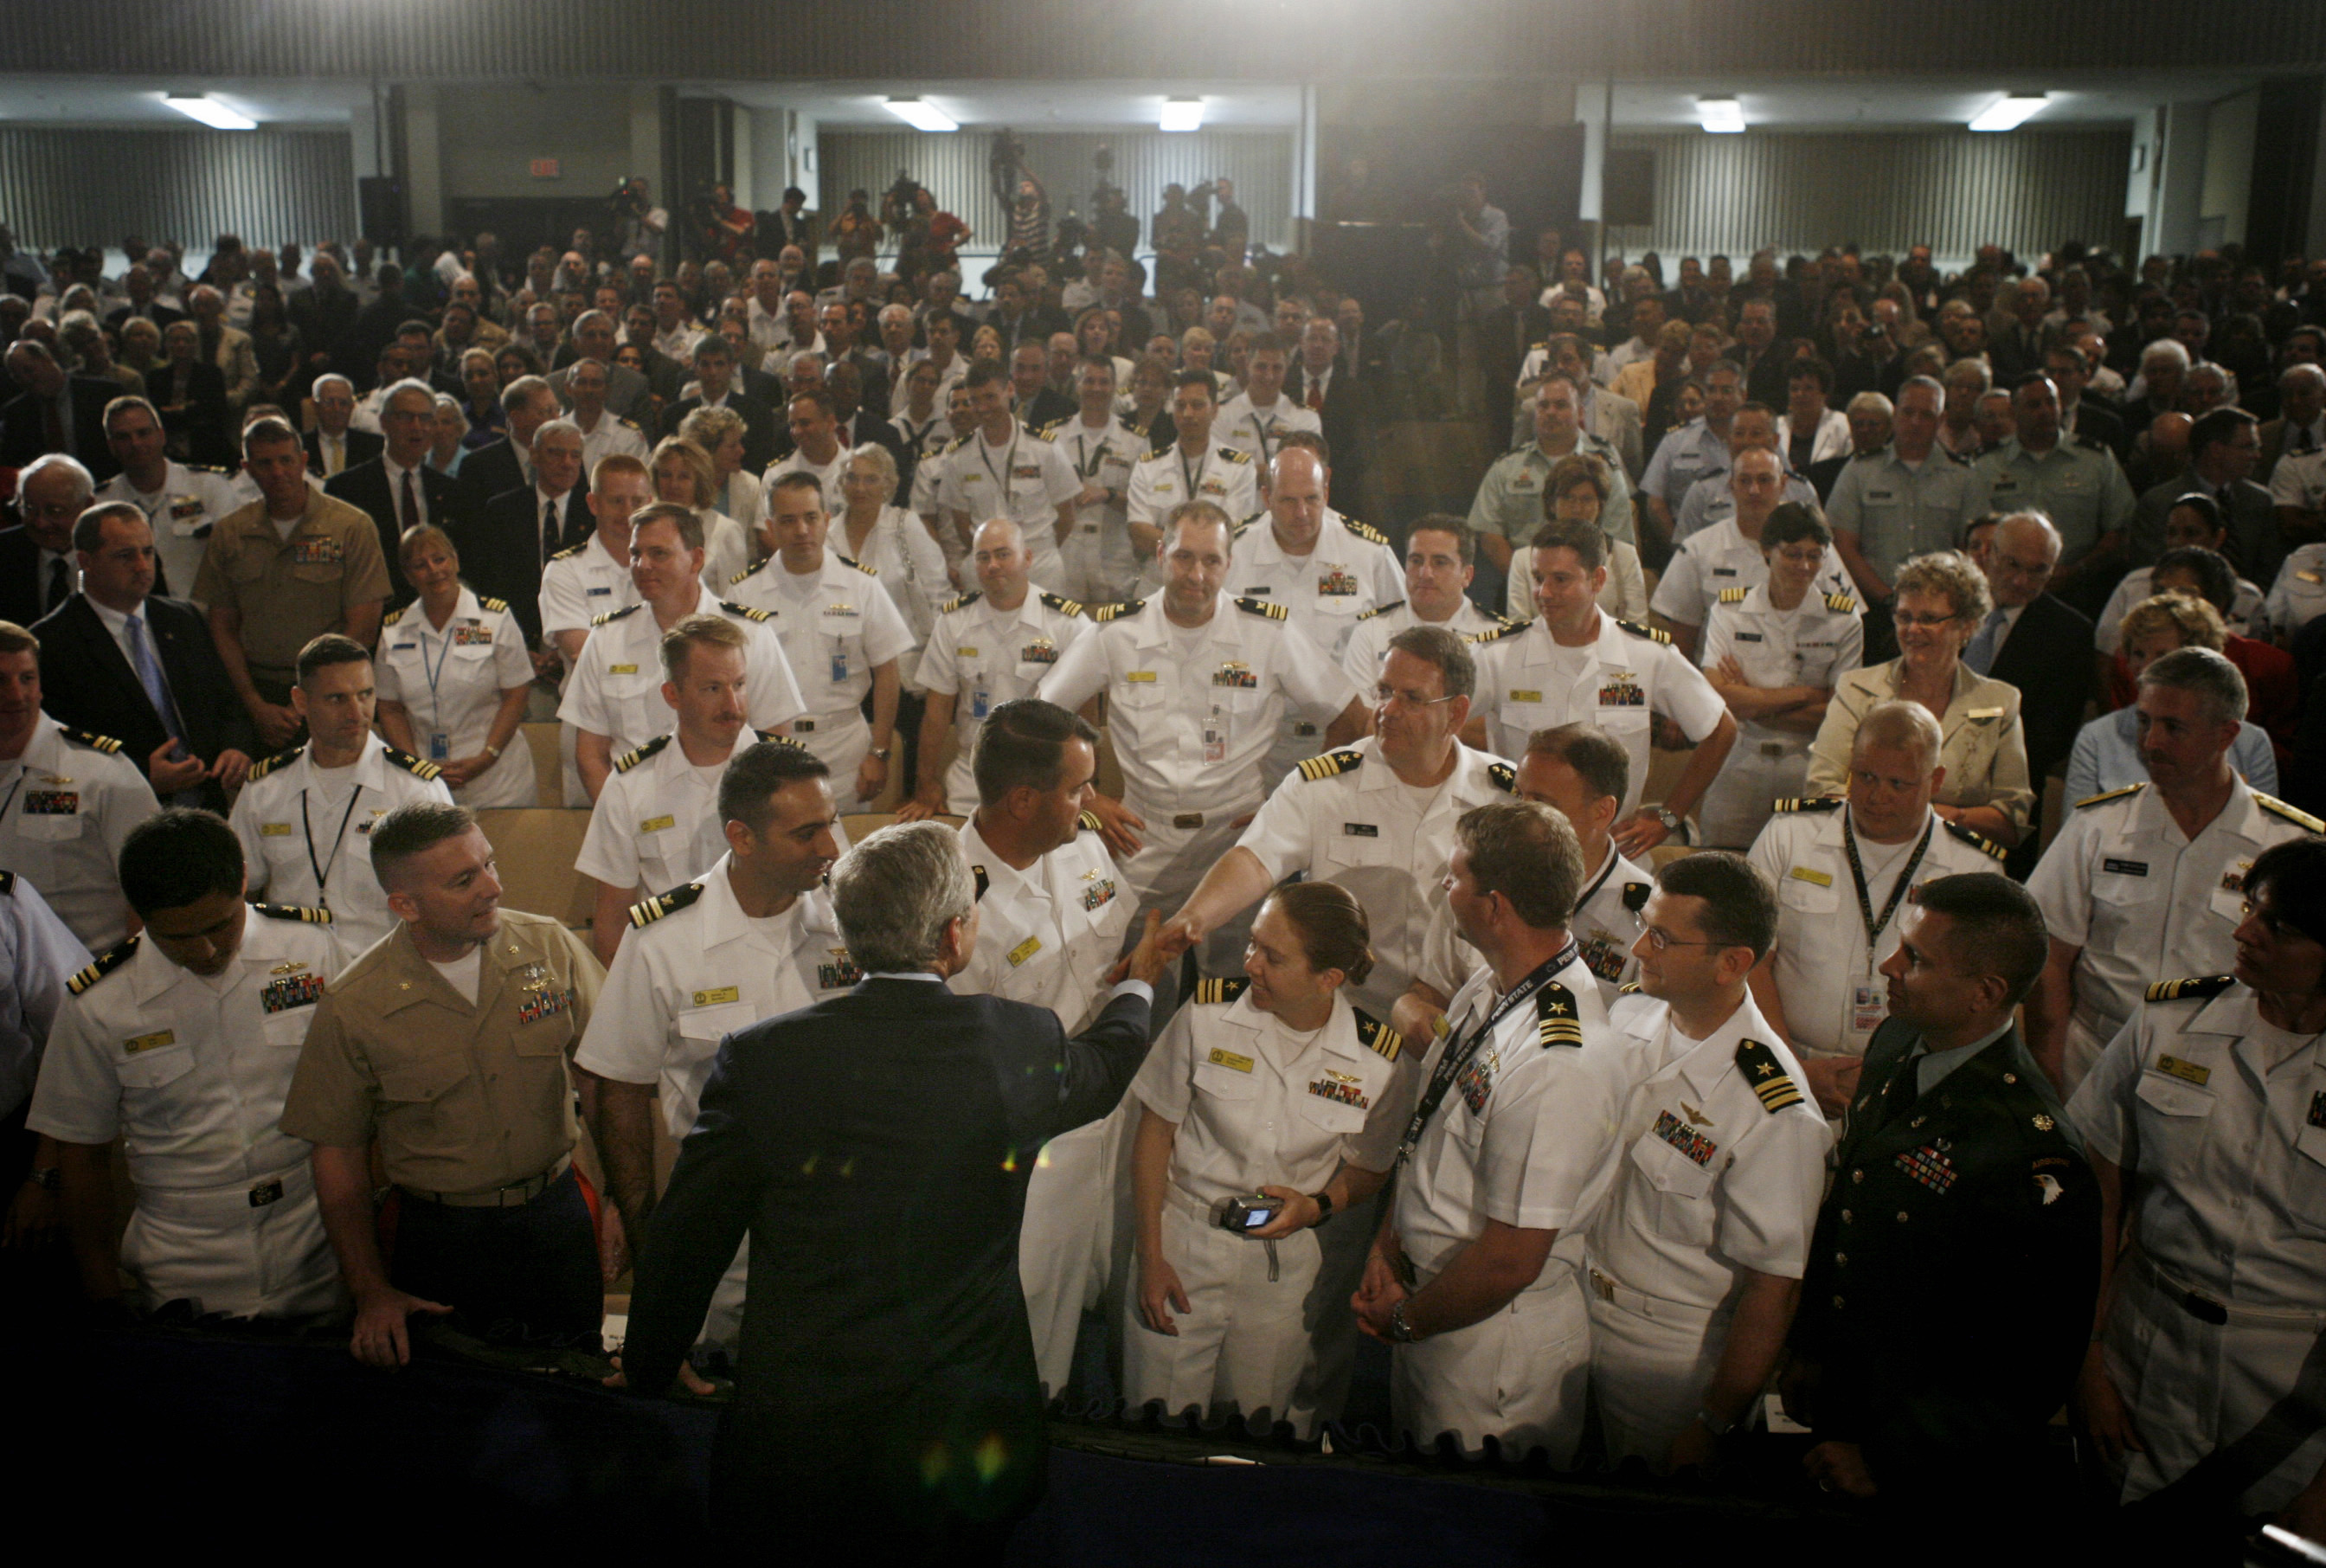 U.S. President George W. Bush greets naval and marine officers following remarks on the war in Iraq at the Naval War College (Jason Reed/Reuters)